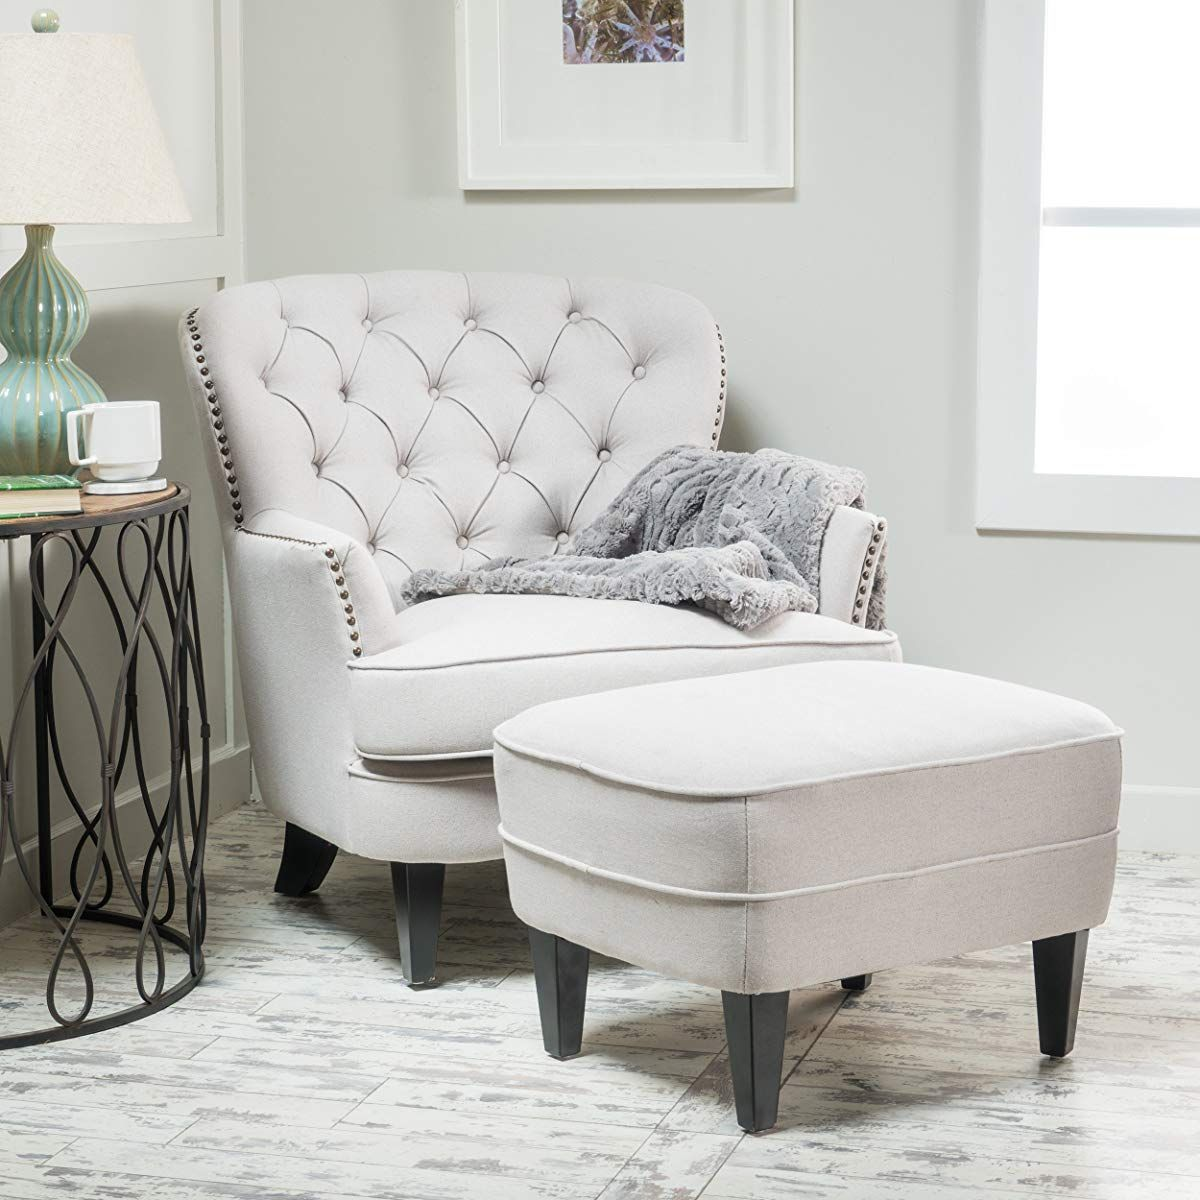 Club chair with ottoman chair and ottoman set